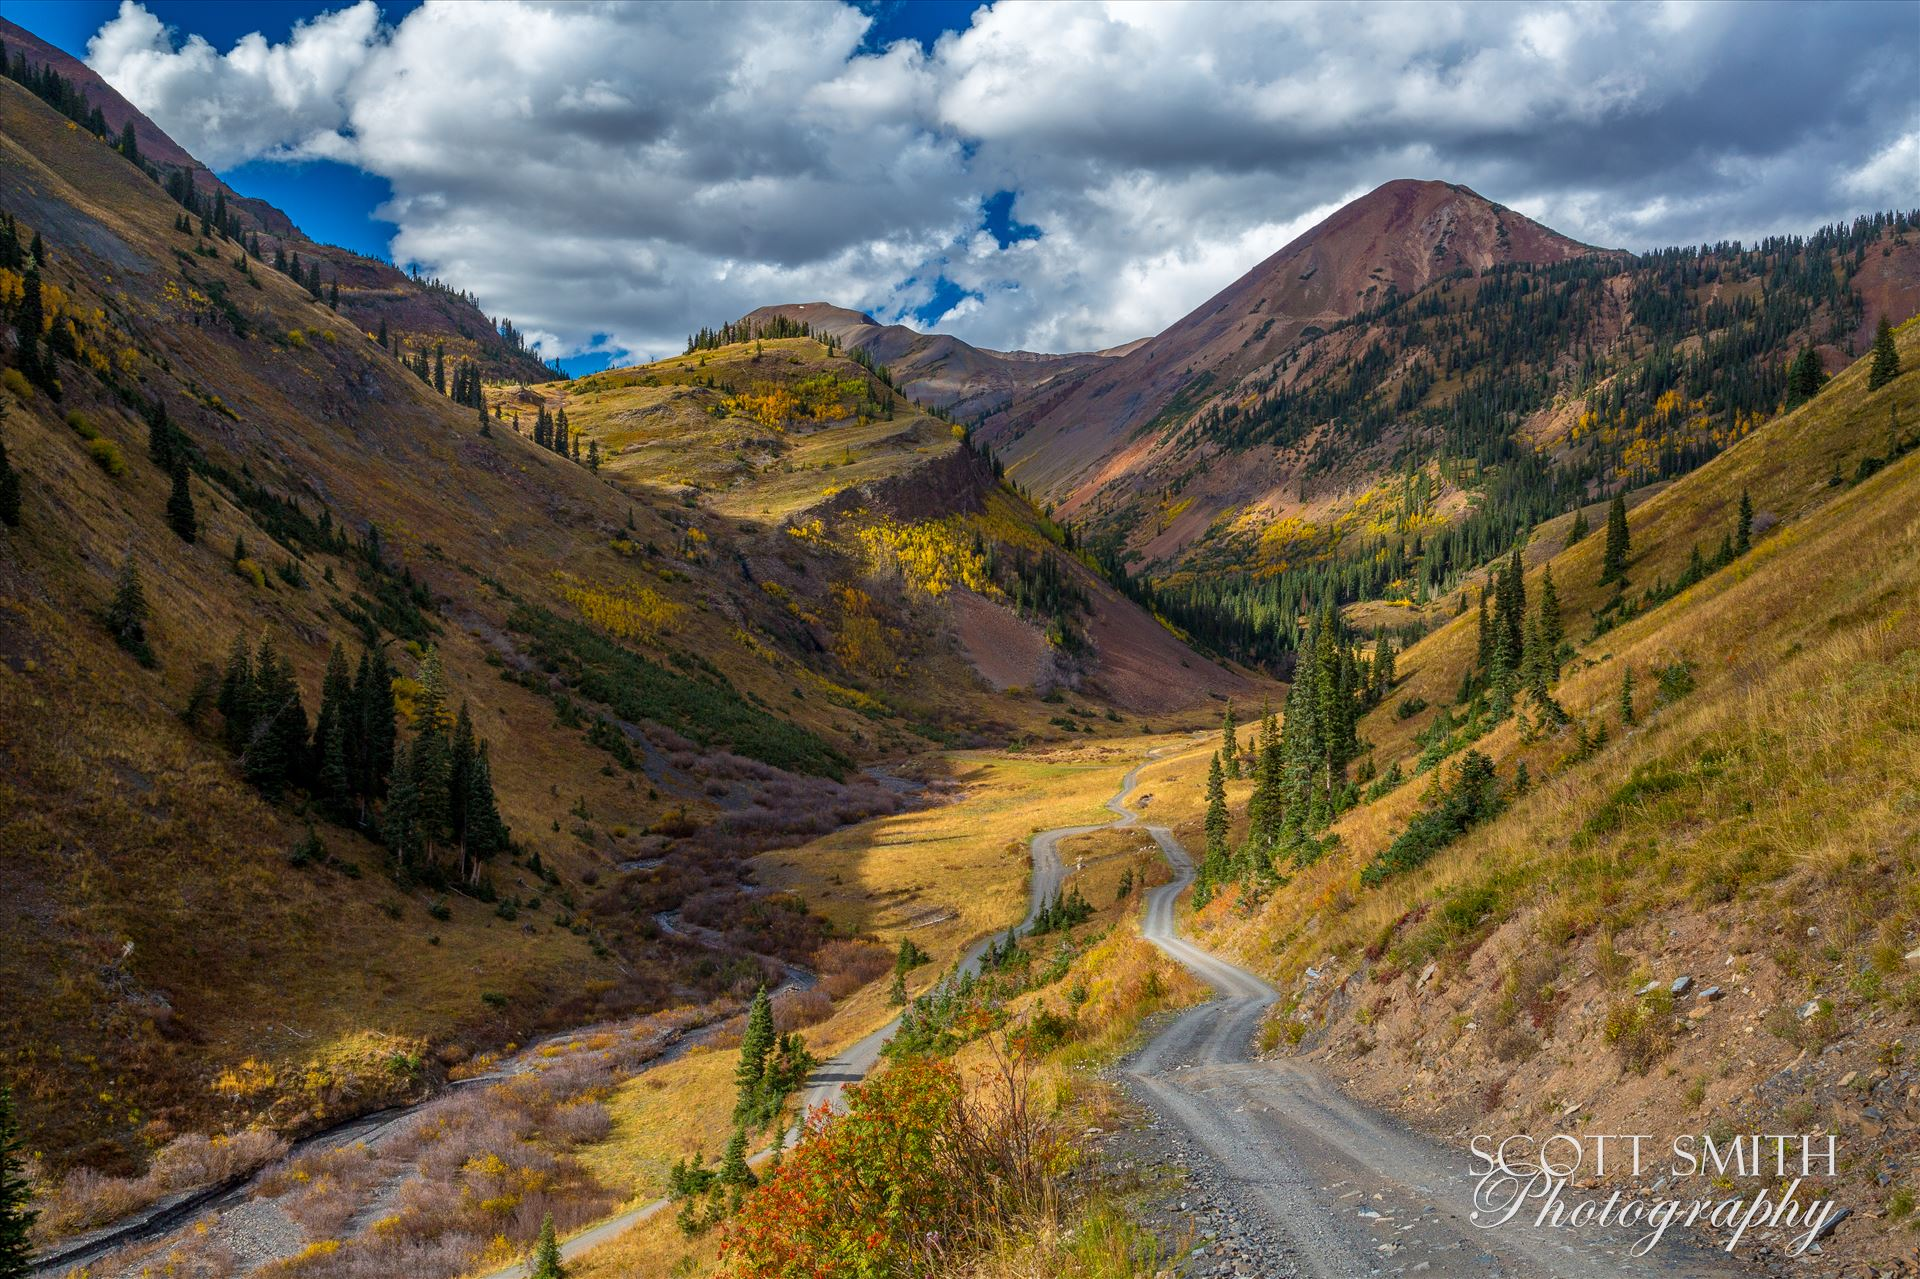 Mount Baldy from Washington Gulch - Mount Baldy, the reddish colored mountain the background, from Washington Gulch. Just outside of Crested Butte, Colorado on Schofield Pass. by Scott Smith Photos